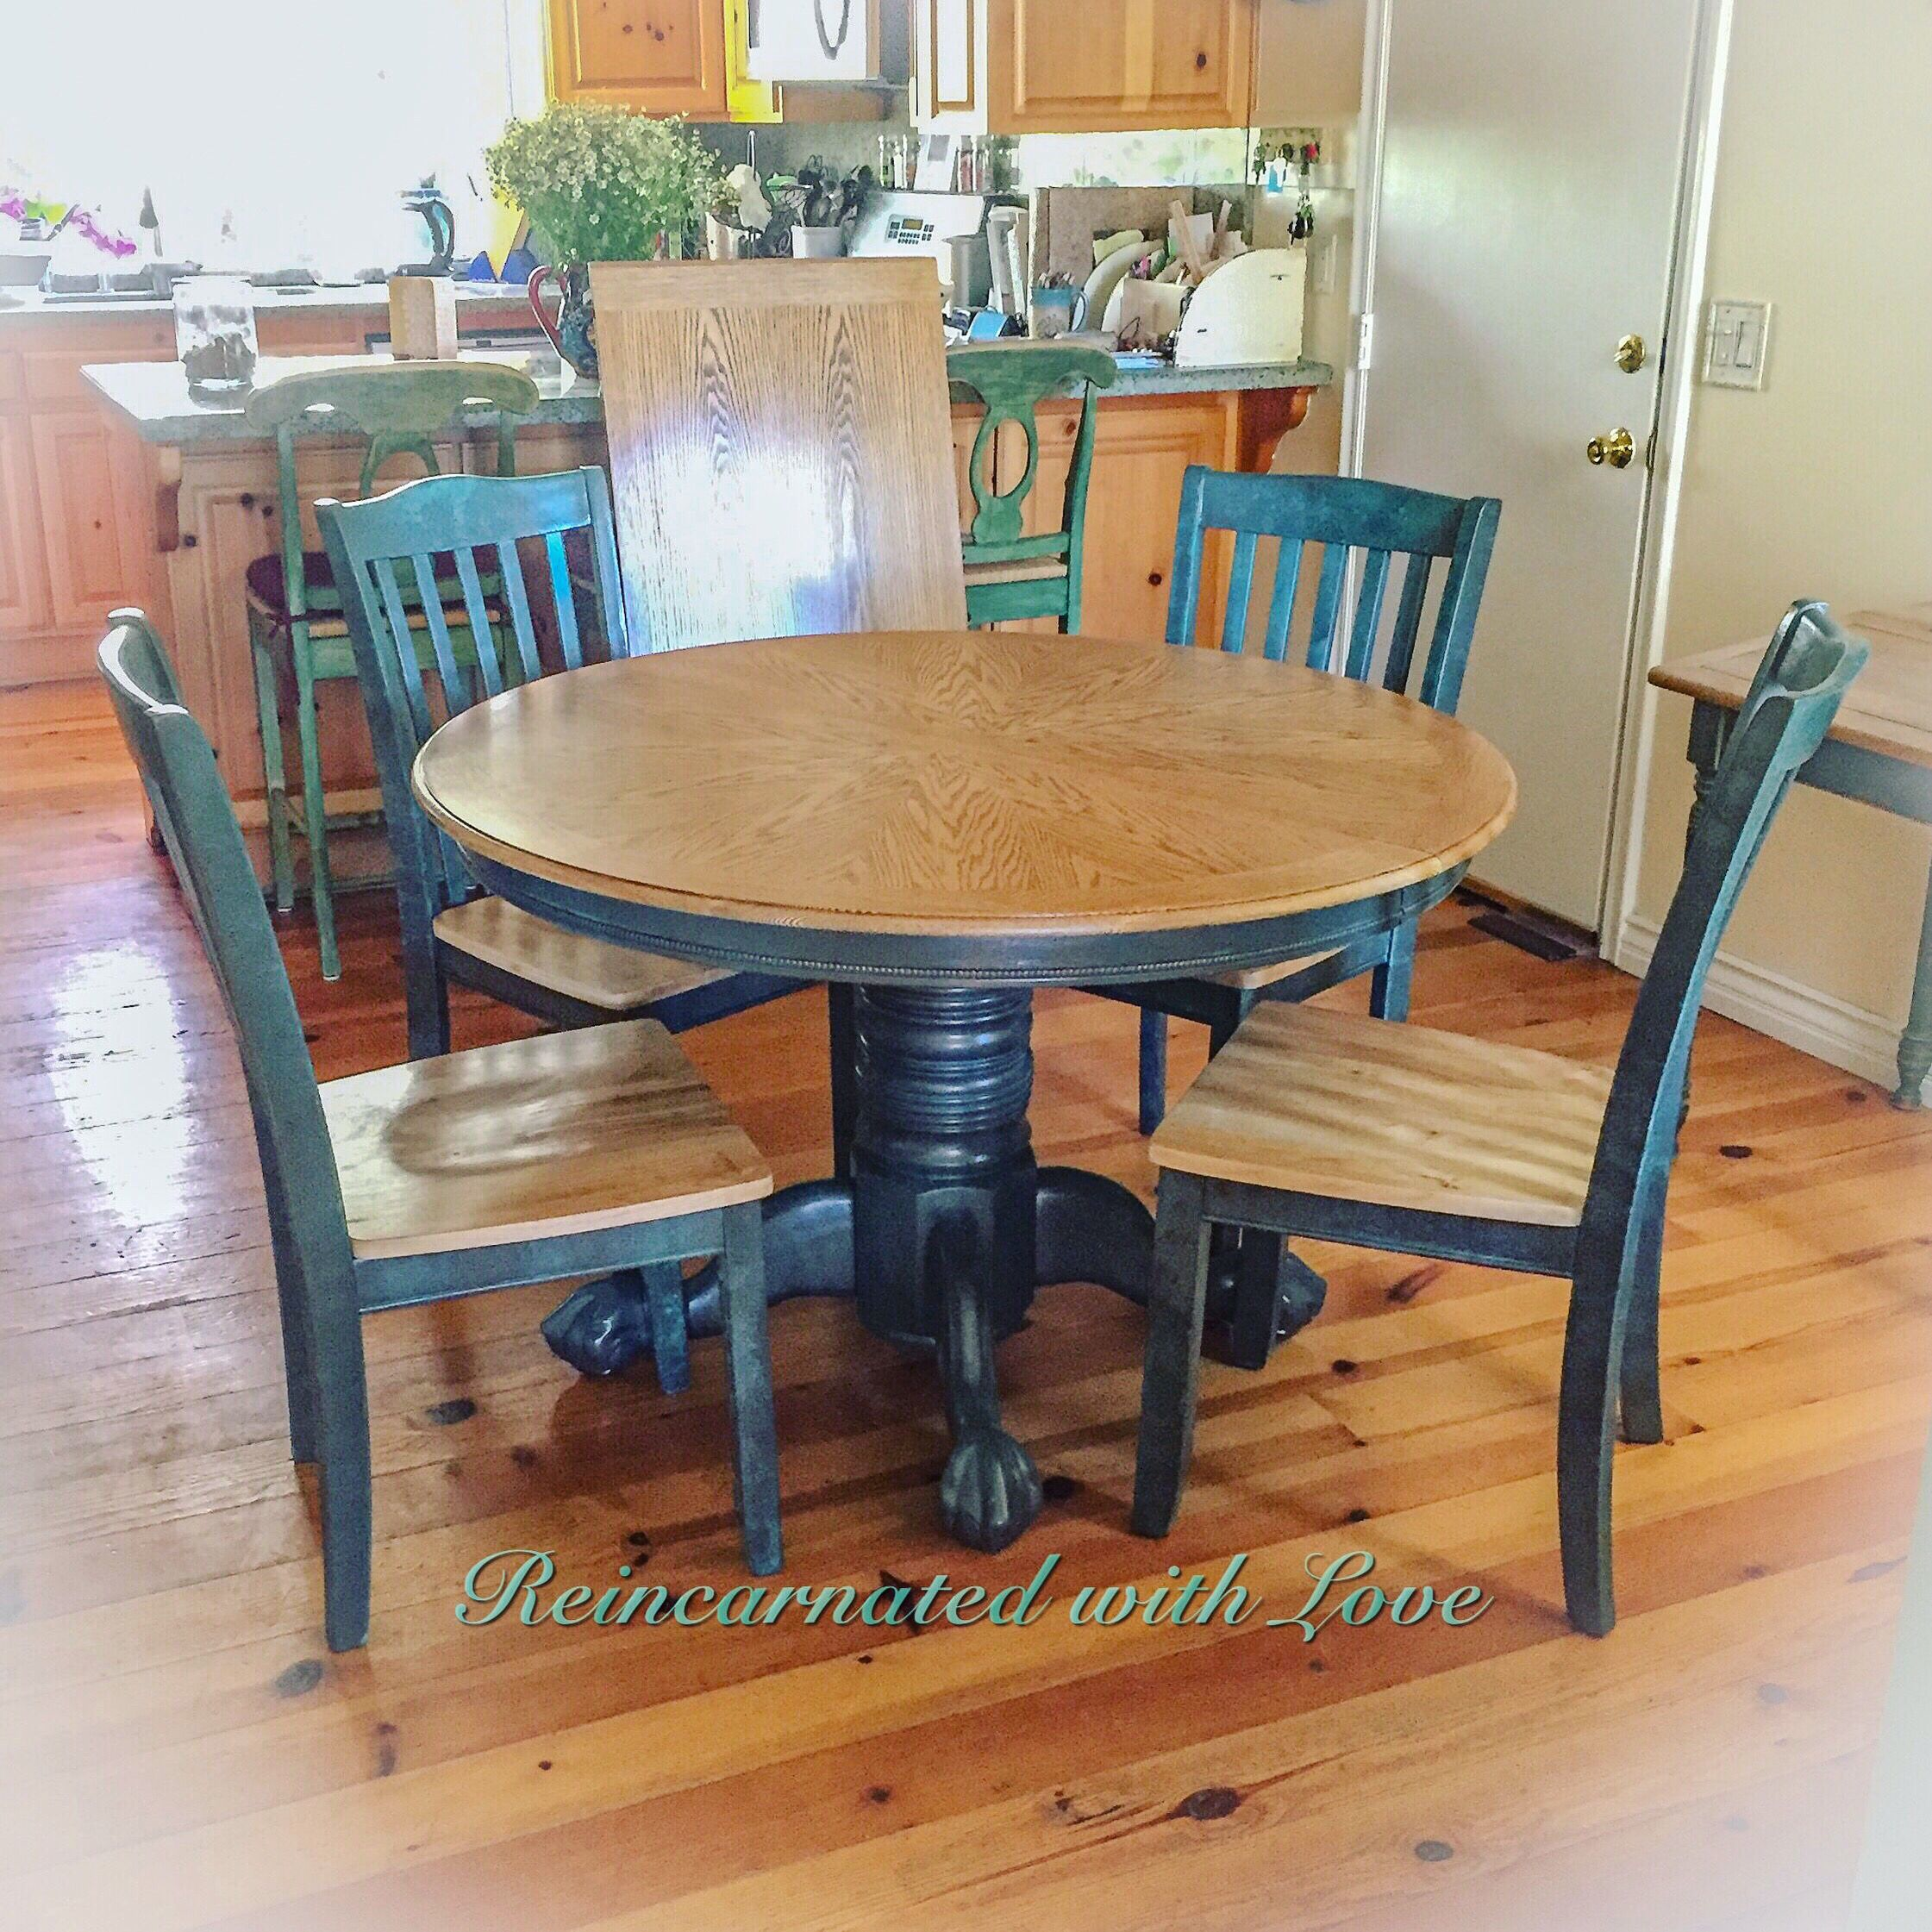 Shabby Chic Dining Set Pedestal Table Chairs With Matching Extension Leaf Shabby Chic Kitchen Table Farmhouse Kitchen Tables Shabby Chic Dining Tables